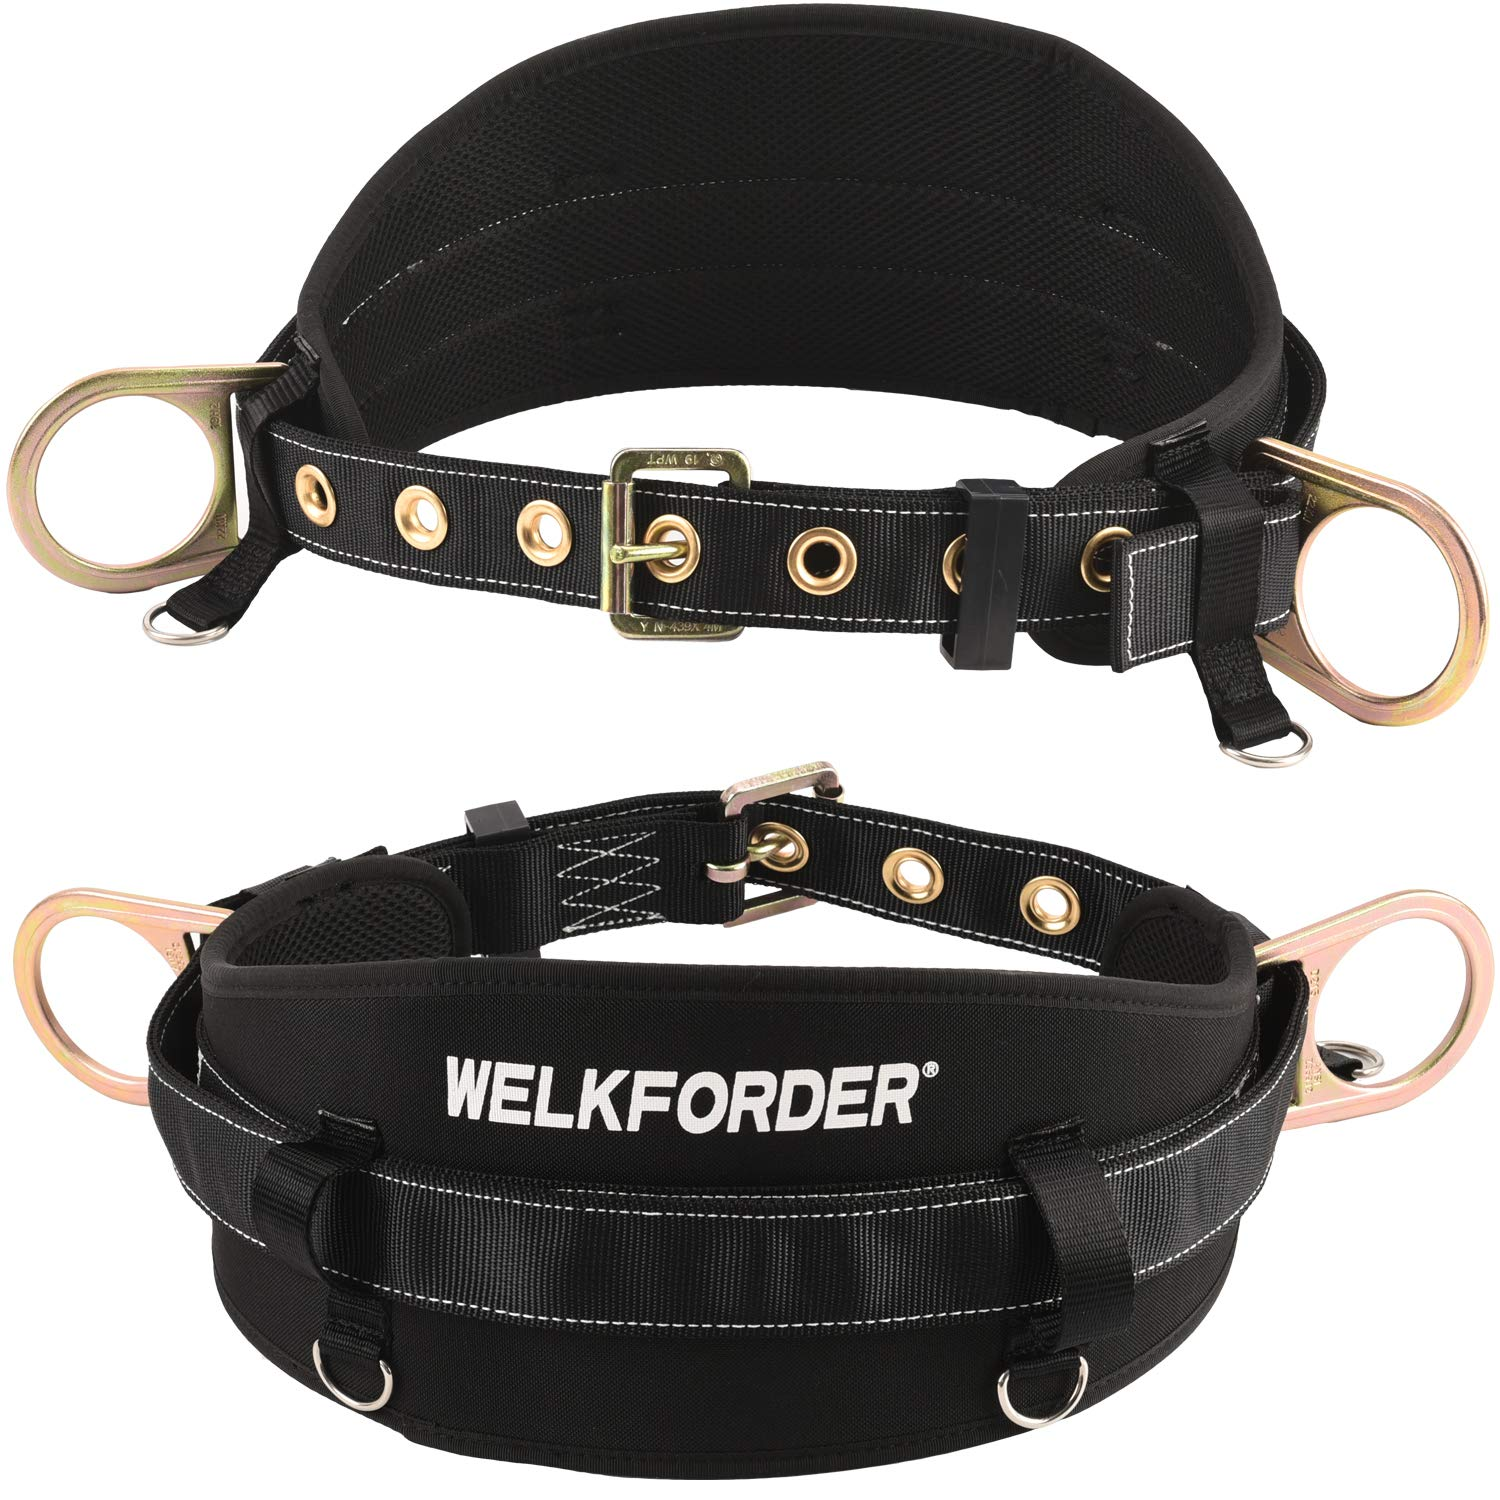 WELKFORDER Tongue Buckle Body Belt with Waist Pad and 2 Side D-Rings Personal Protective Equipment Safety Harness | Waist Fitting Size 32'' to 46'' for Work Positioning, Restraint by WELKFORDER